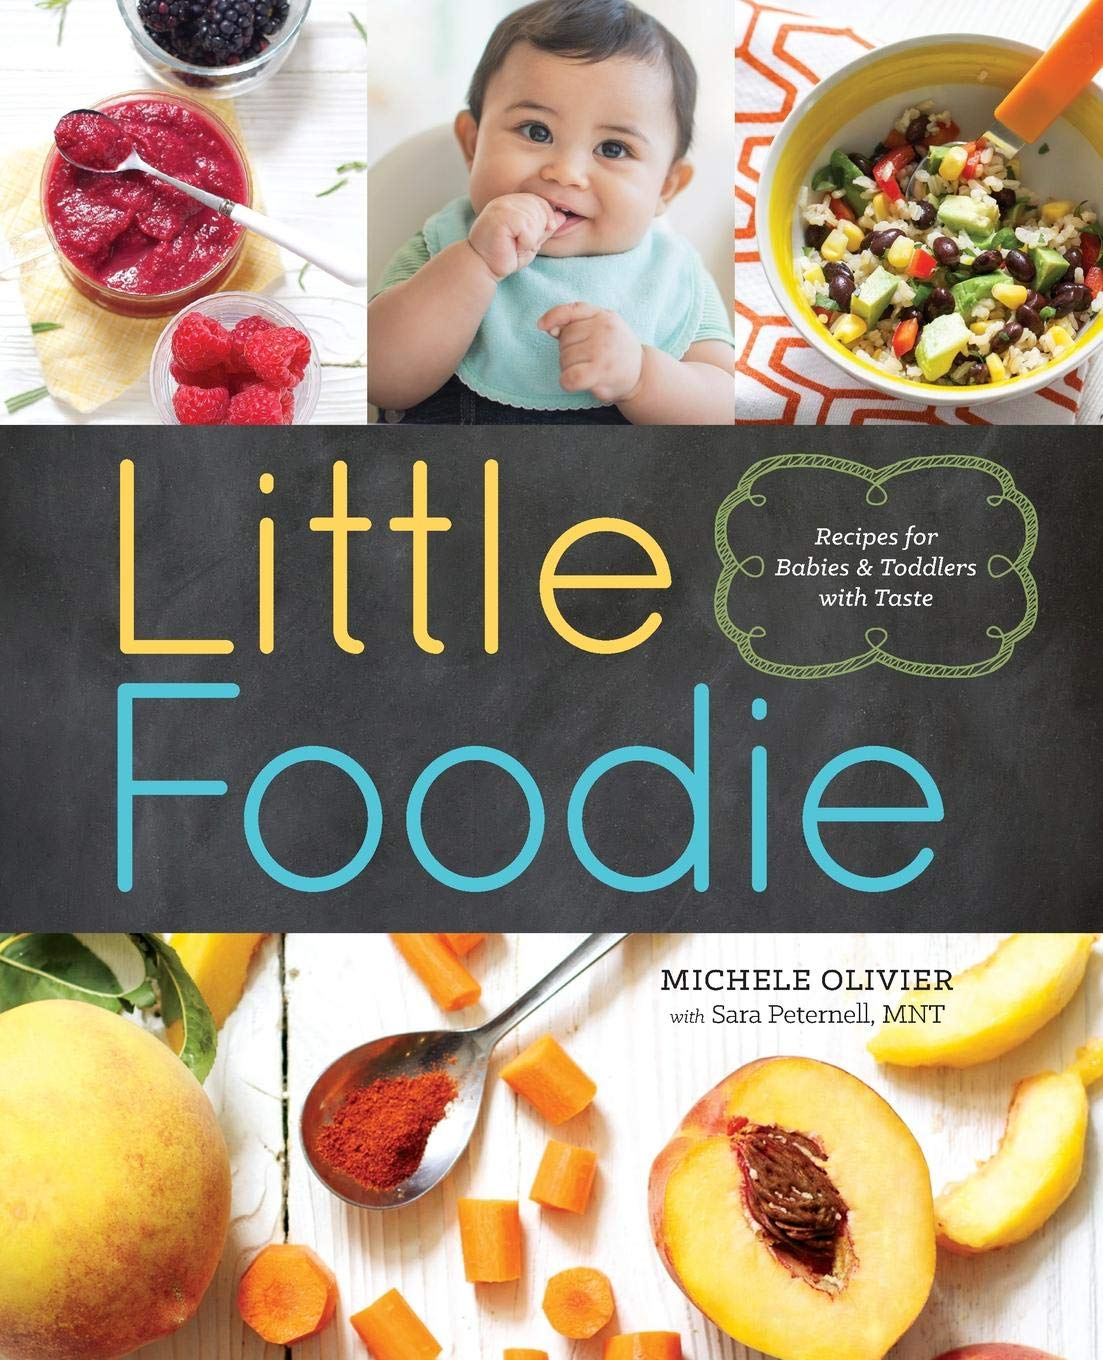 Top 19 Best Baby Food Books For Healthy And Happier Babies 14